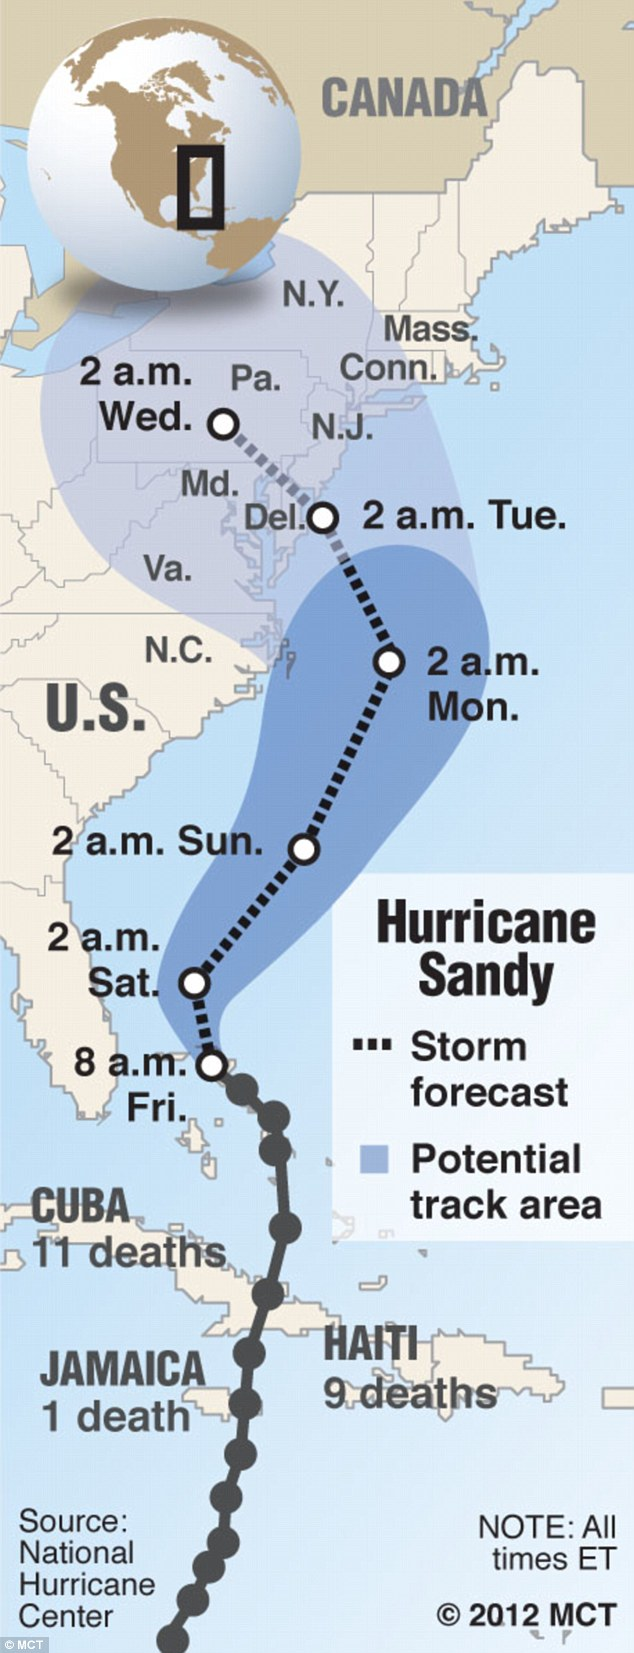 Path of the Storm: Map showing the potential track and storm forecast for Hurricane Sandy